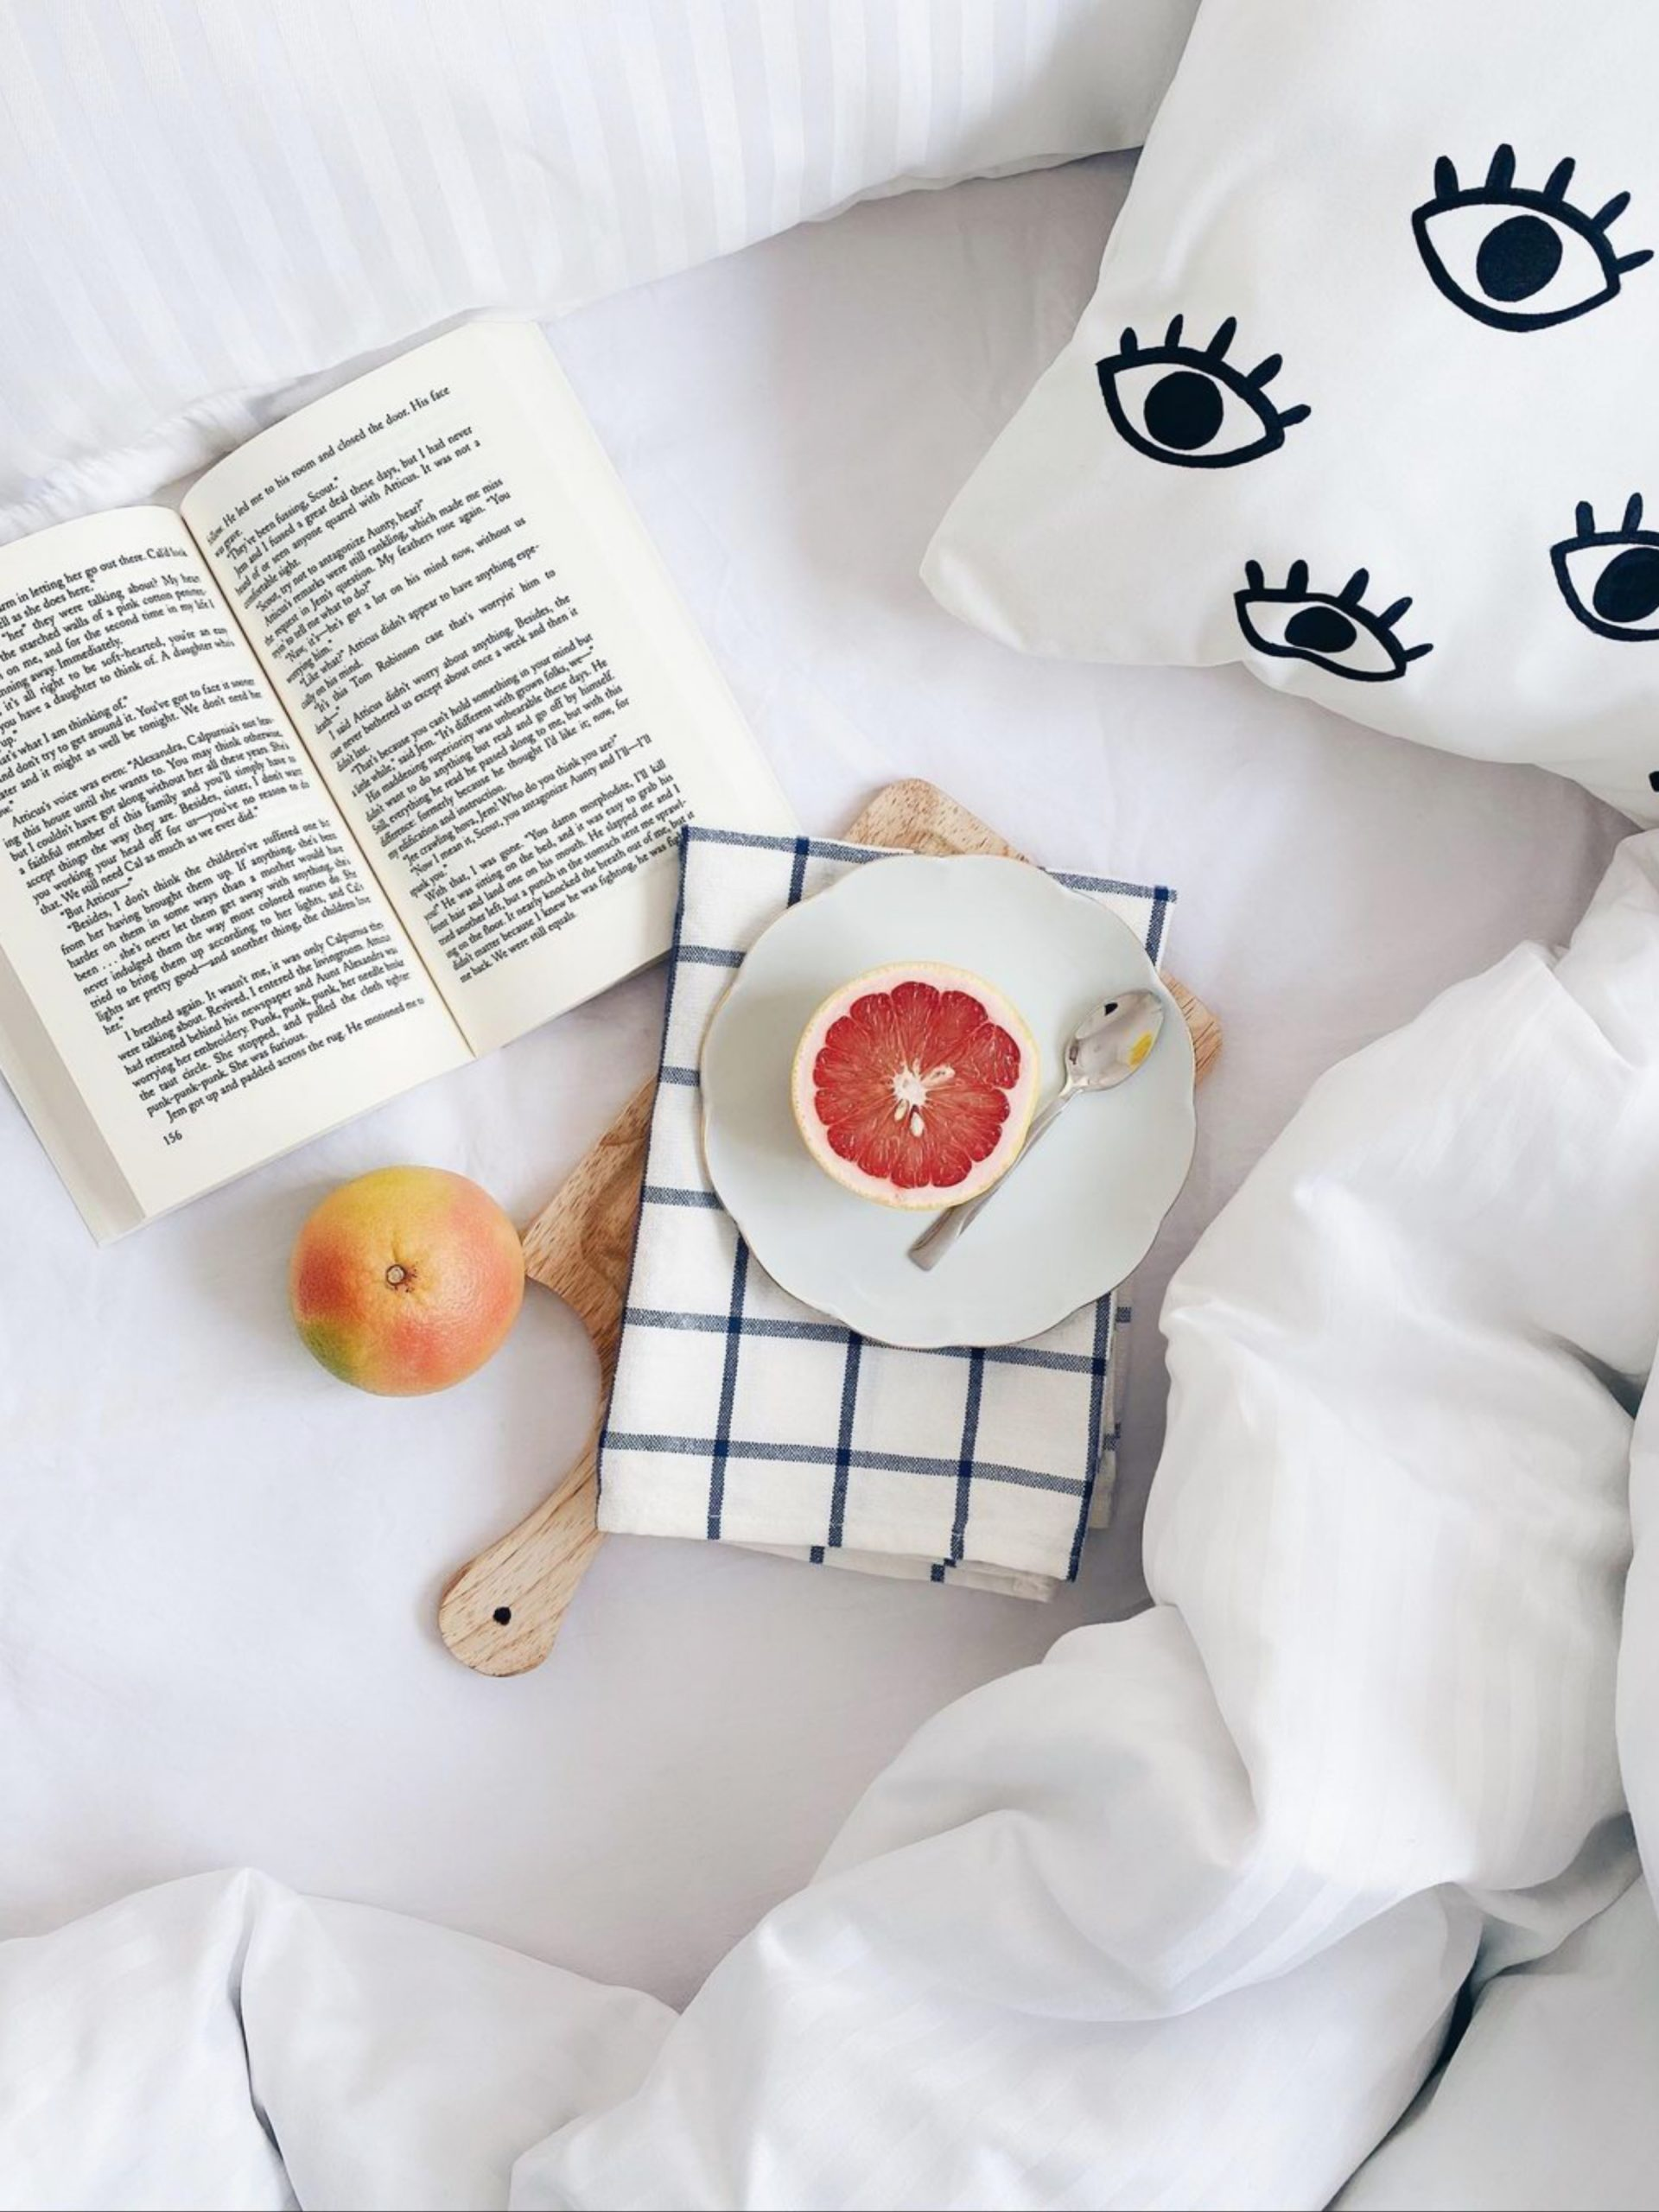 Fruit on the bed with book